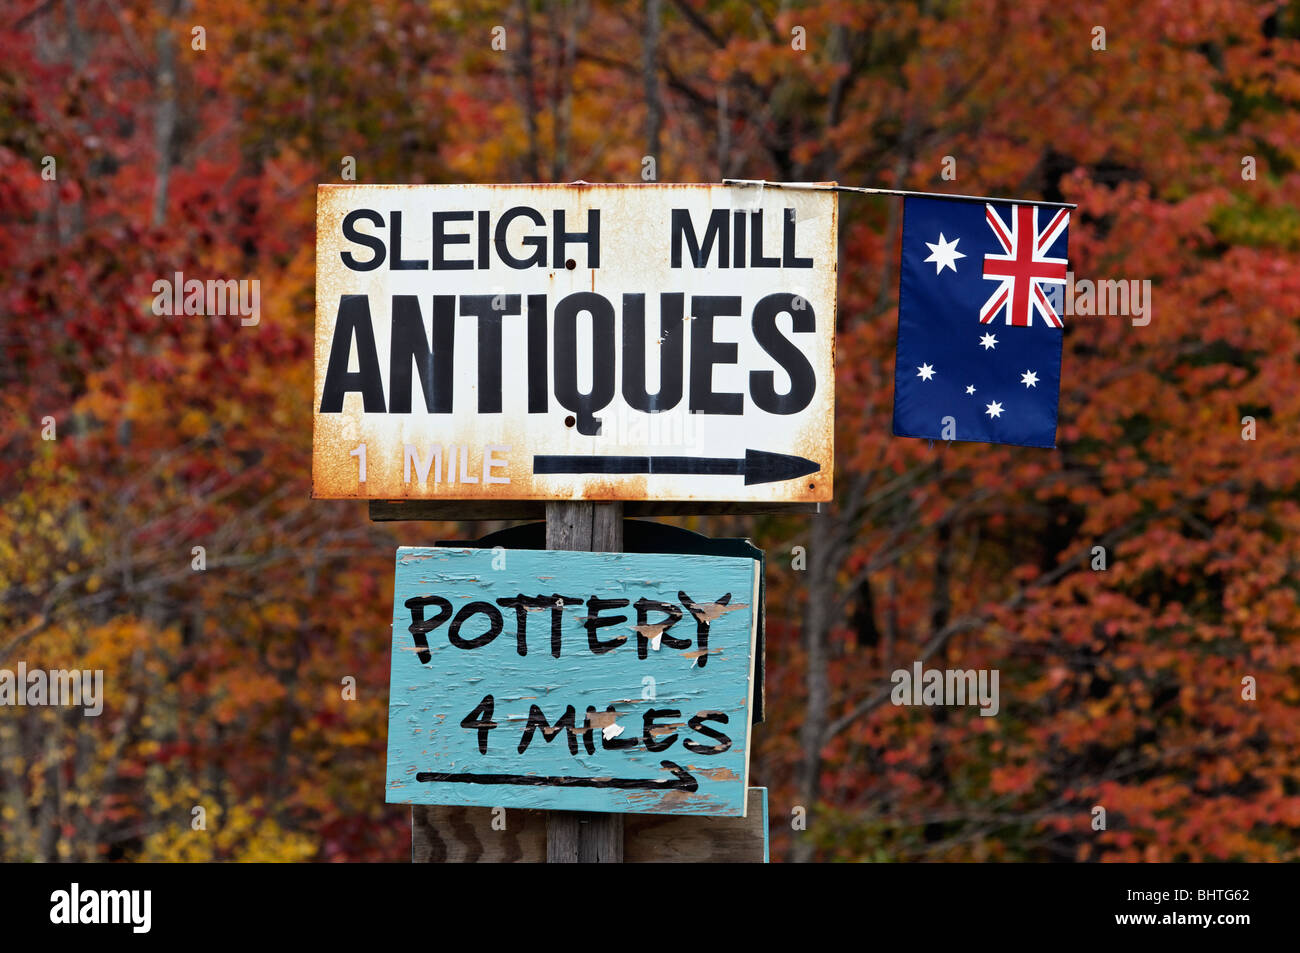 Sleigh Mill Antiques and Pottery Signs in Eaton Center, New Hampshire - Stock Image